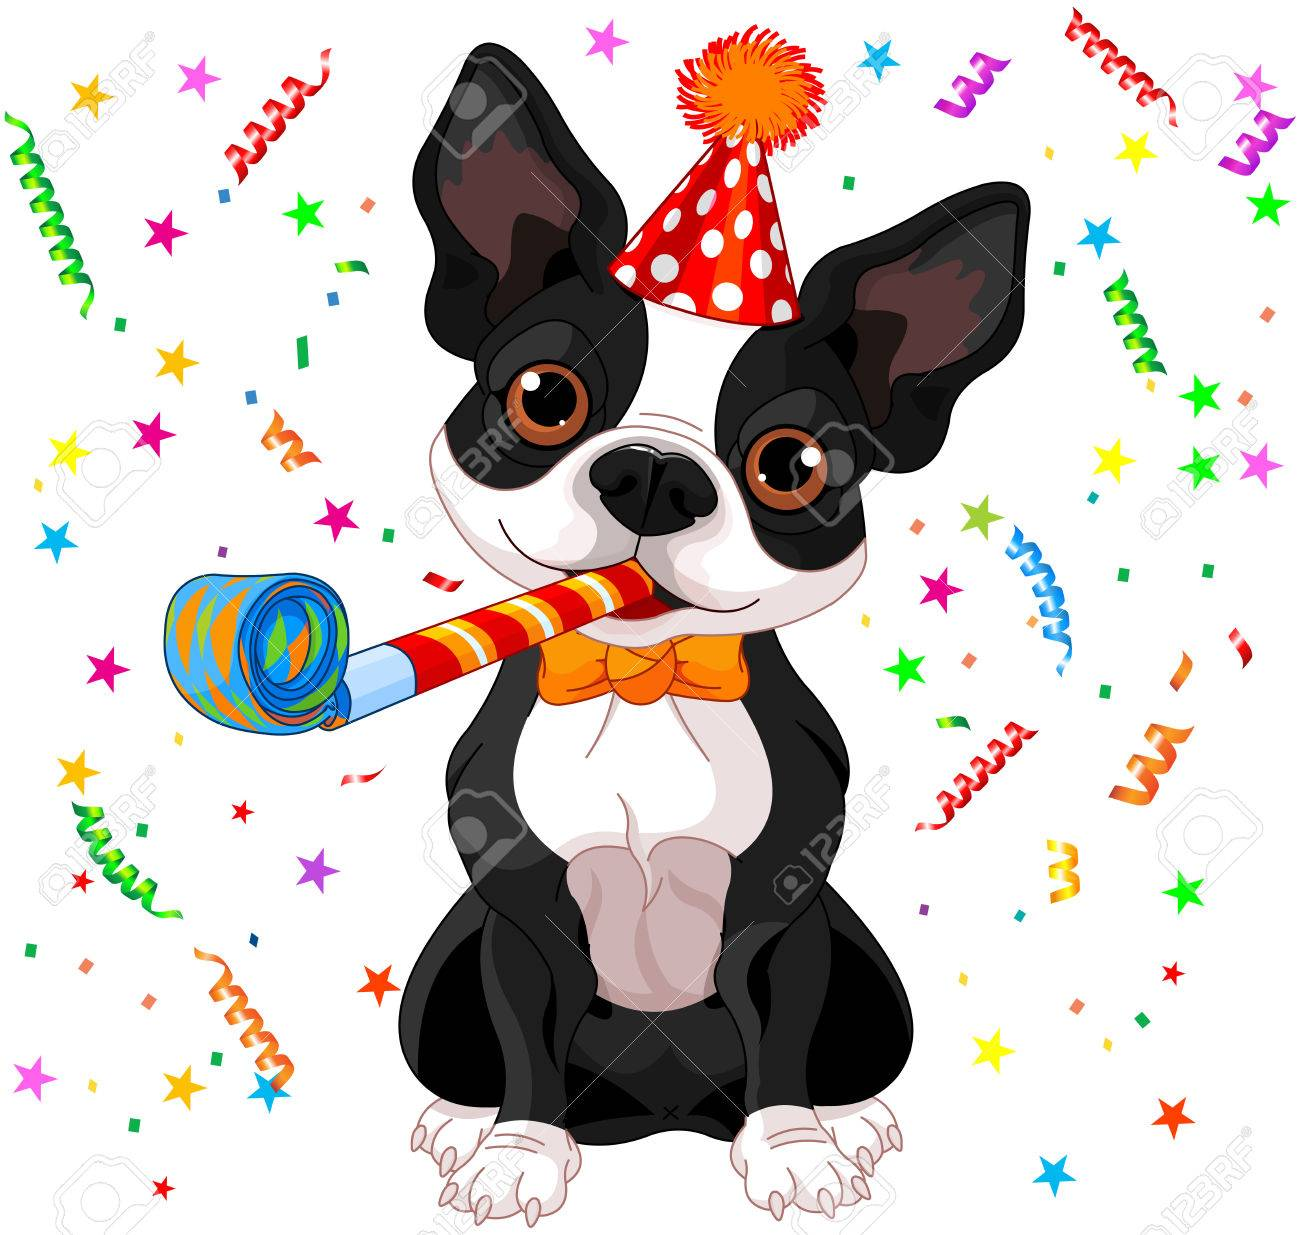 Concours/compétition à haut niveau et méthodes positives 35588778-illustration-of-cute-boston-terrier-celebrating